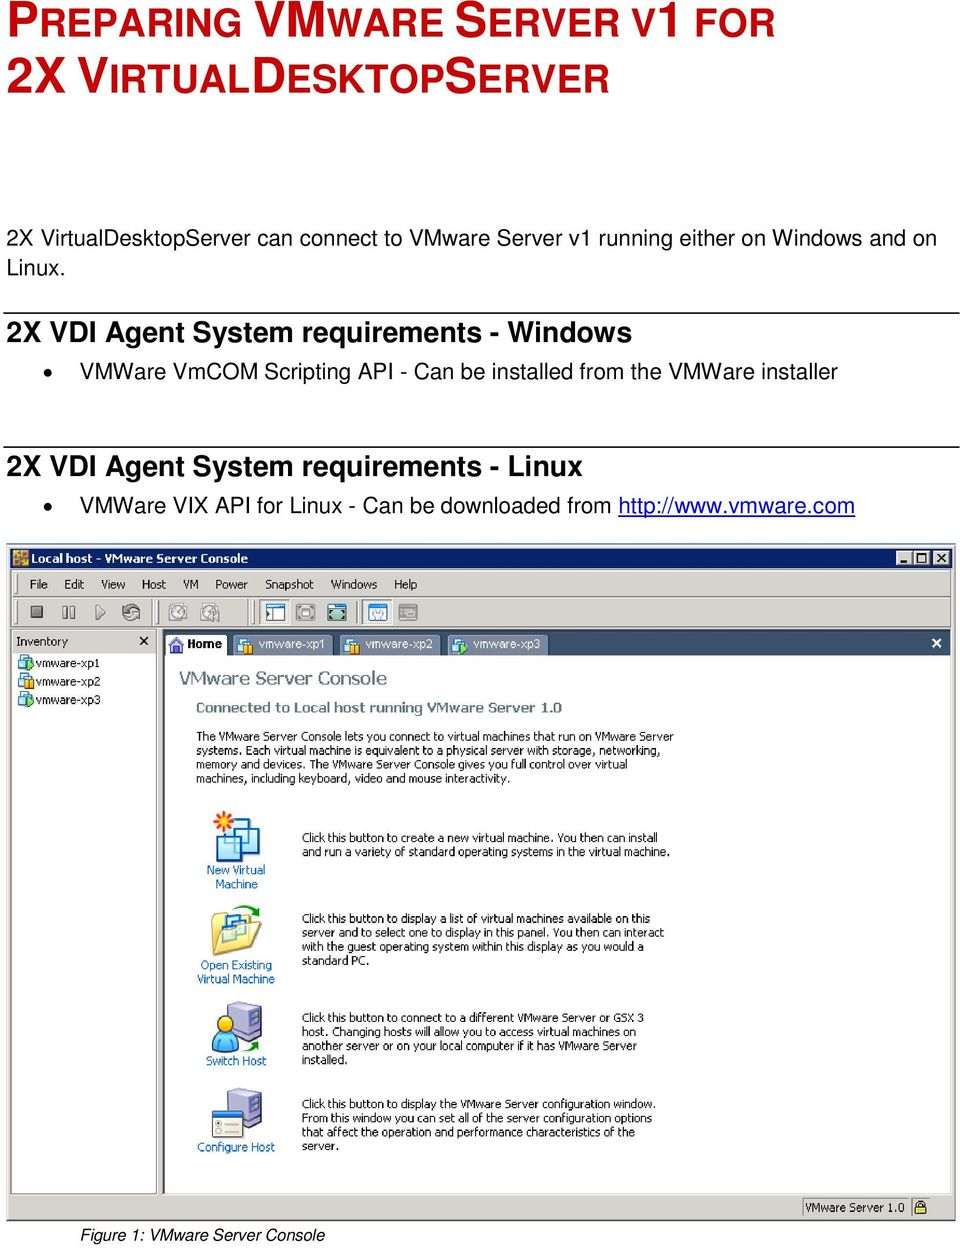 2X VDI Agent System requirements - Windows VMWare VmCOM Scripting API - Can be installed from the